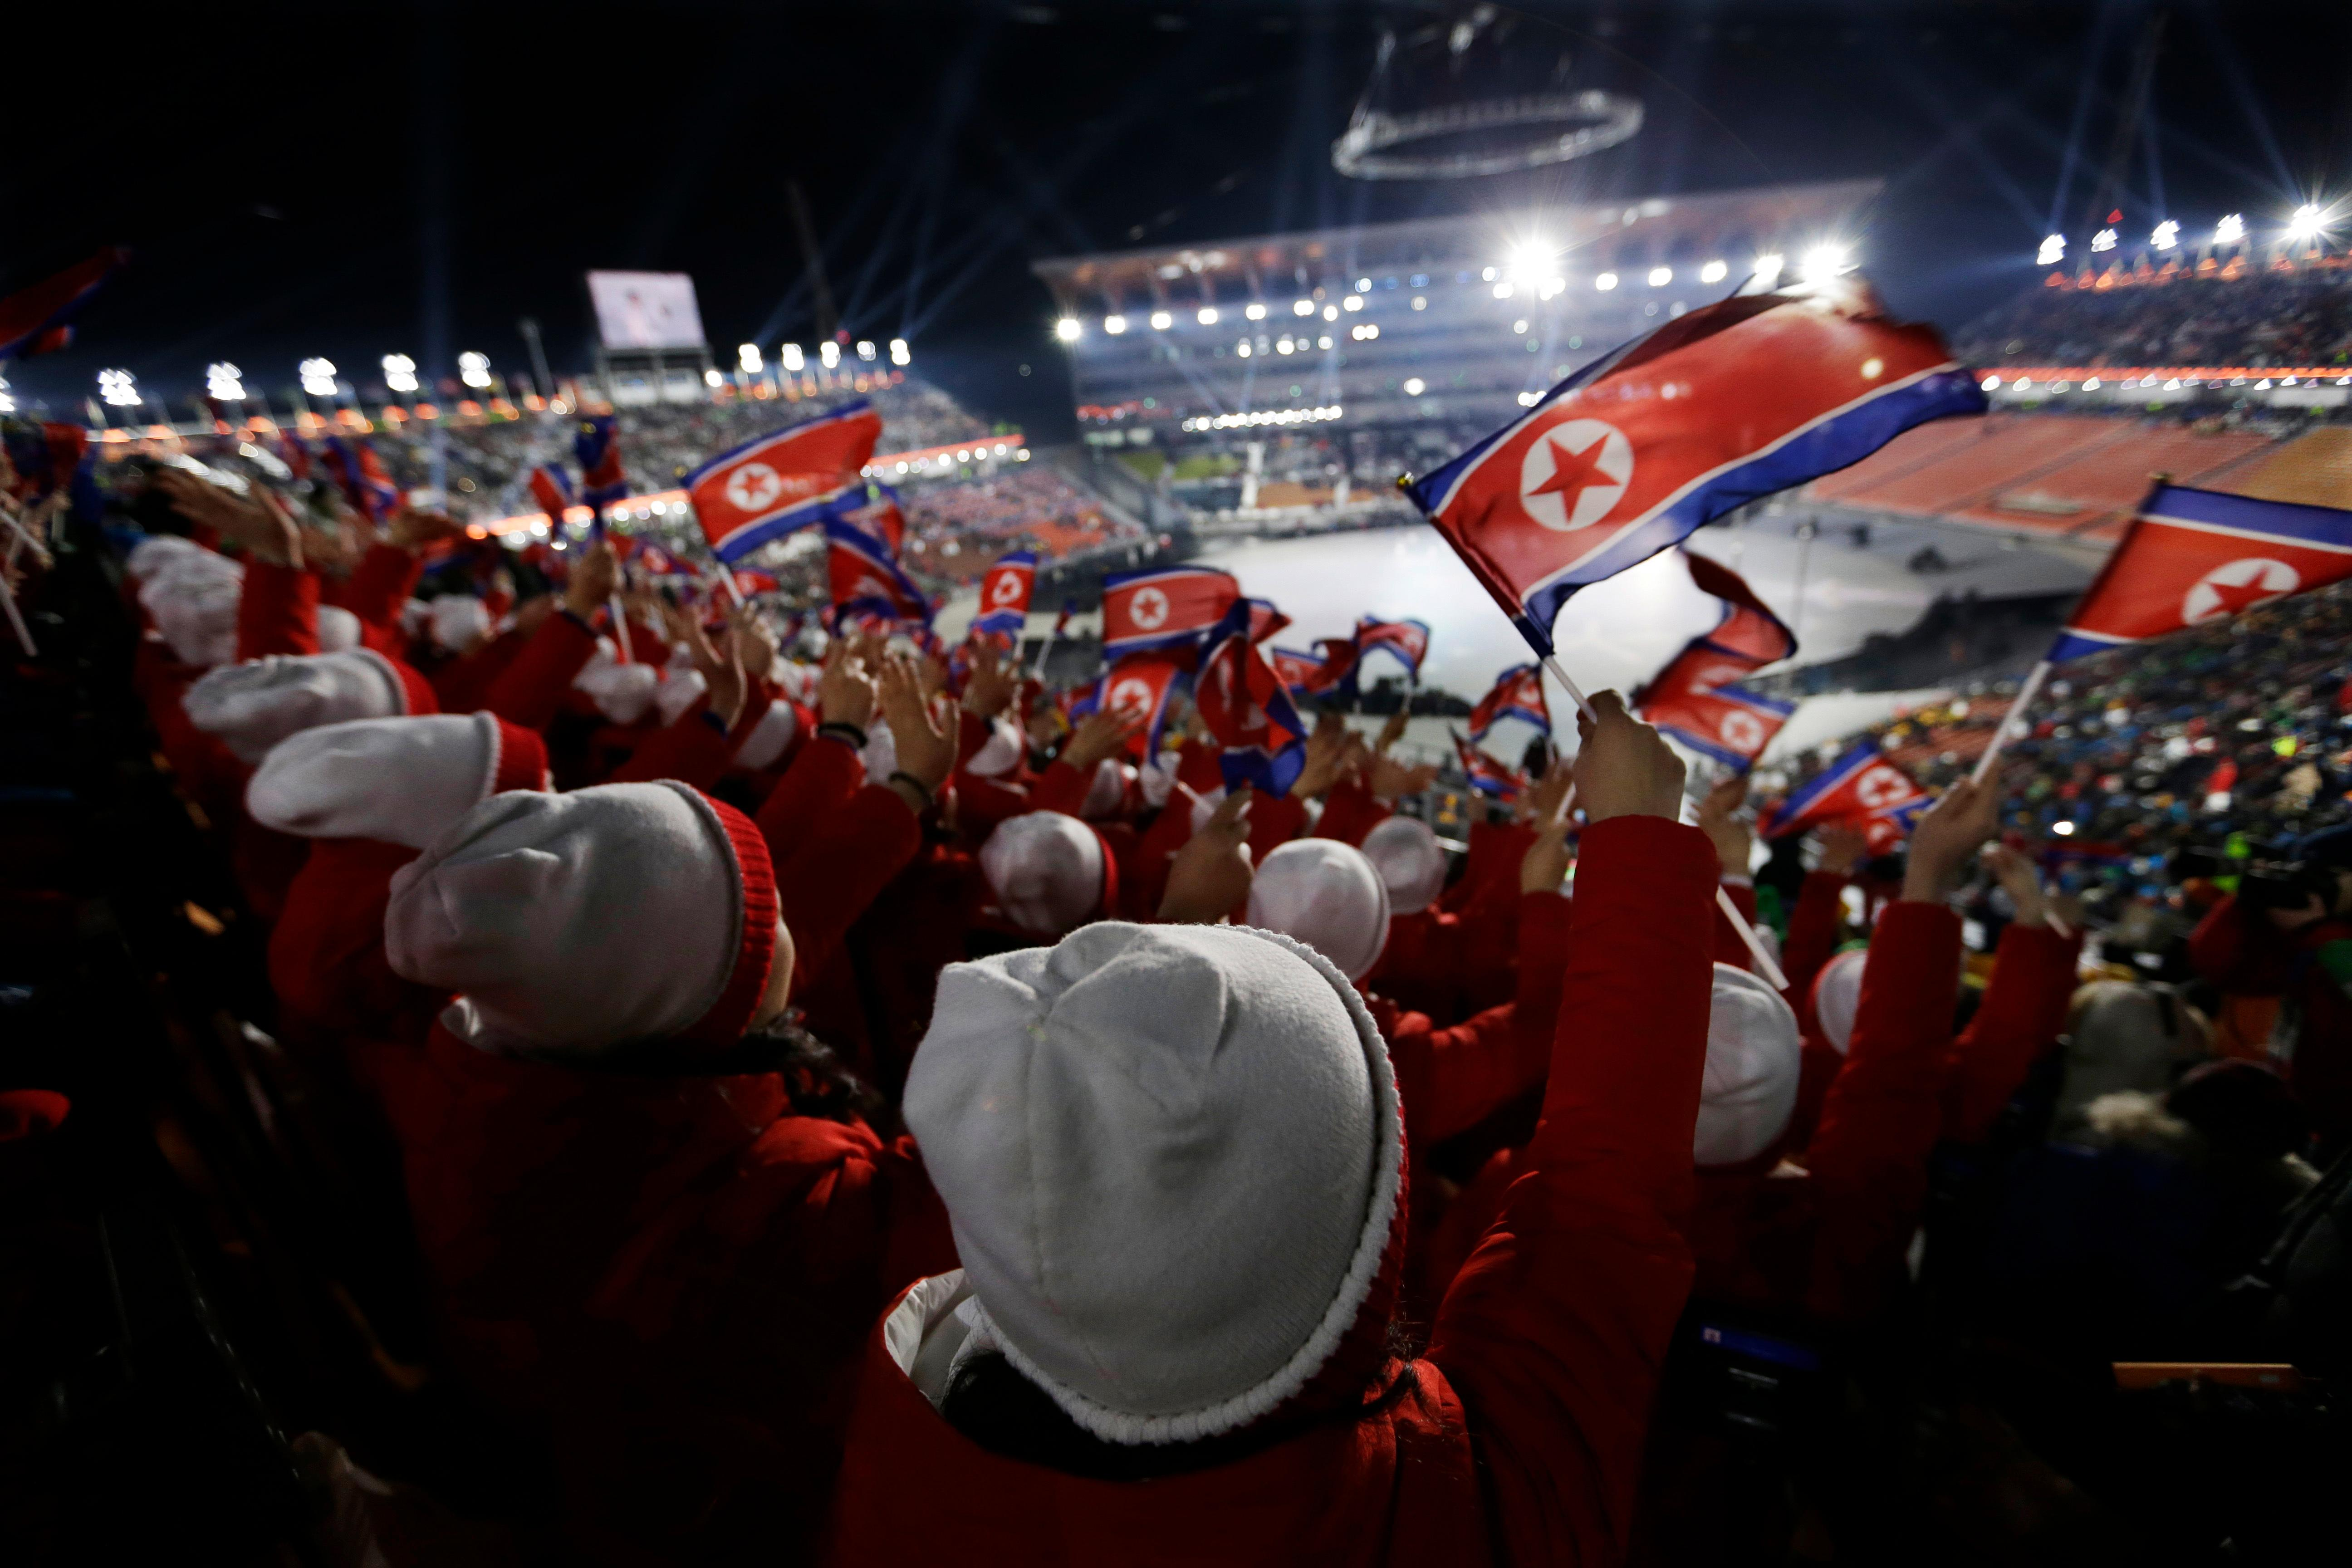 Members of the North Korean delegation wave flags before the opening ceremony of the 2018 Winter Olympics in Pyeongchang, South Korea, Friday, Feb. 9, 2018. (AP Photo/Natacha Pisarenko)